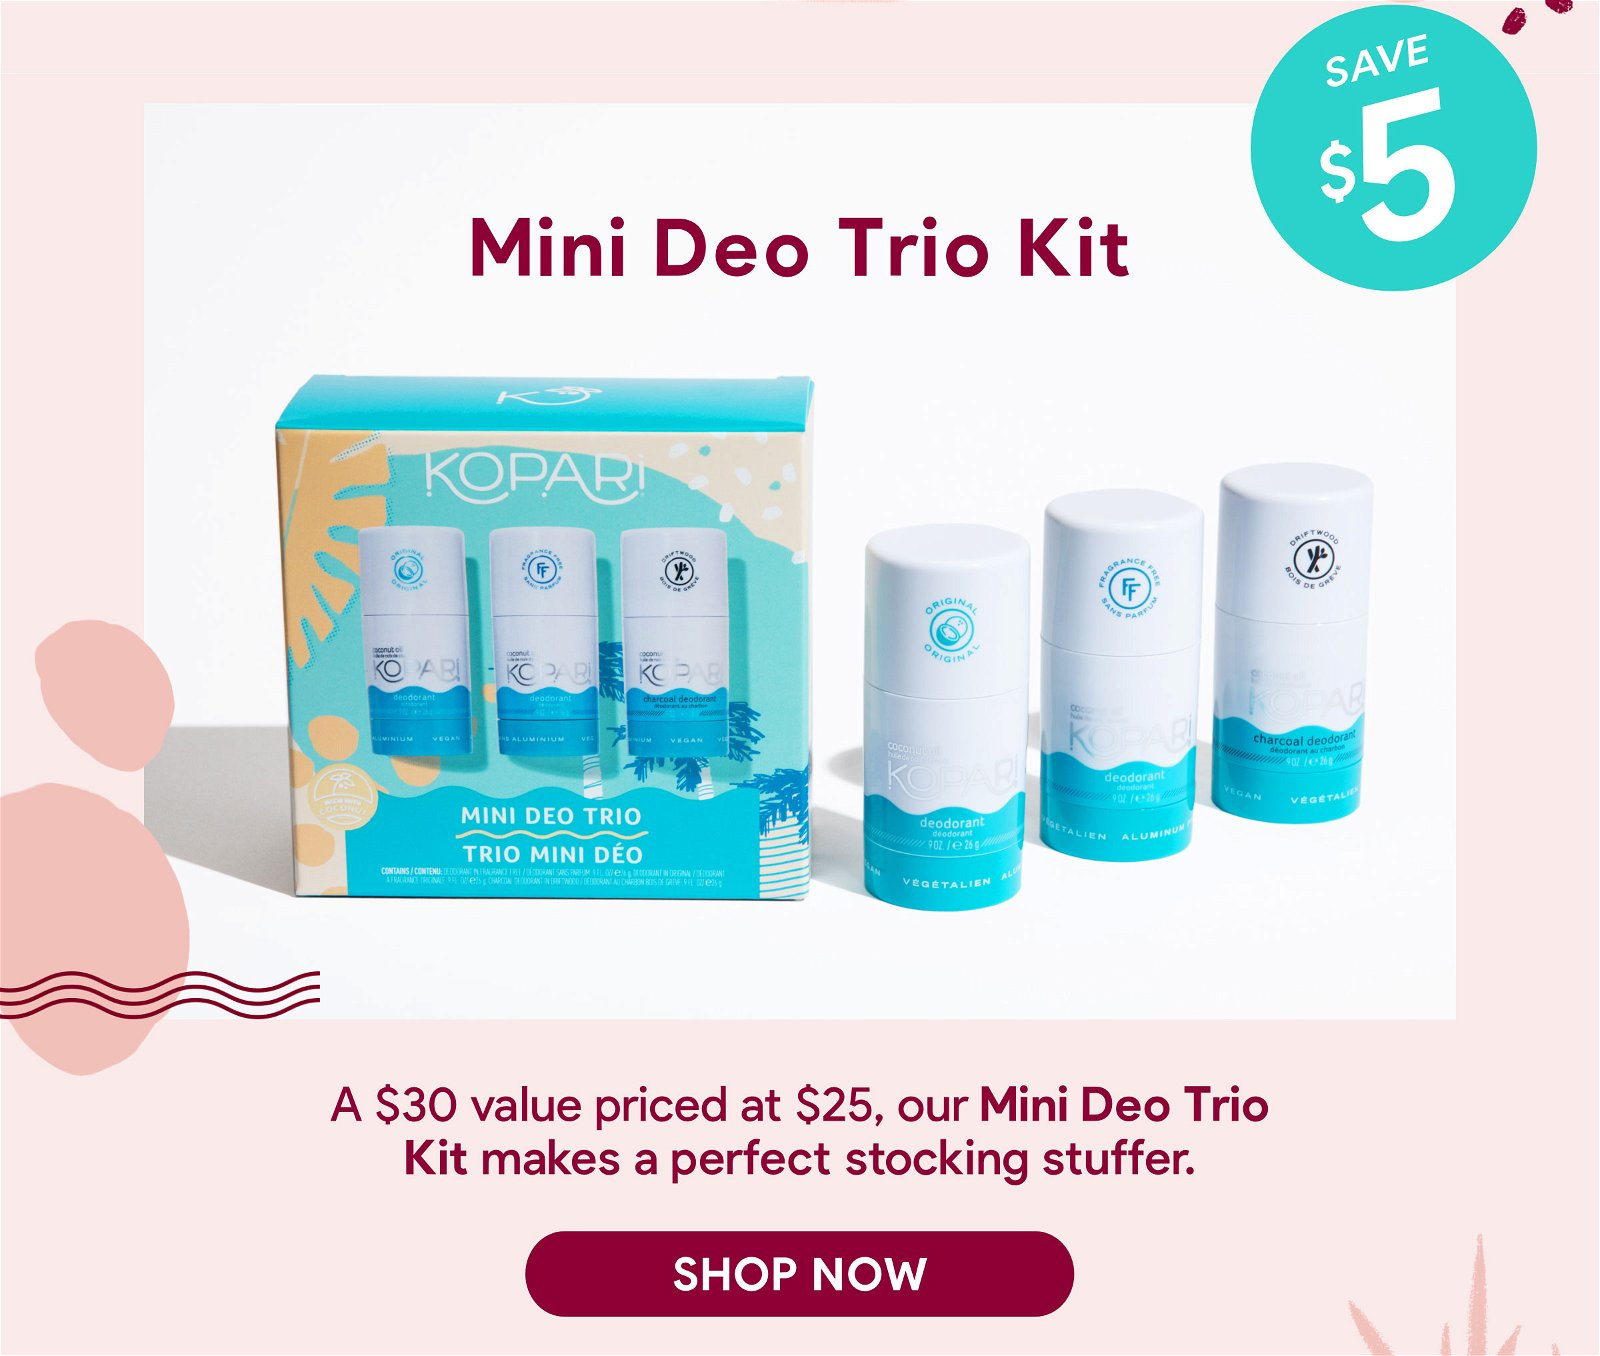 Mini Deo Trio Kit | A $30 value priced at $25, our Mini Deo Trio Kit makes a perfect stocking stuffer. | SHOP NOW